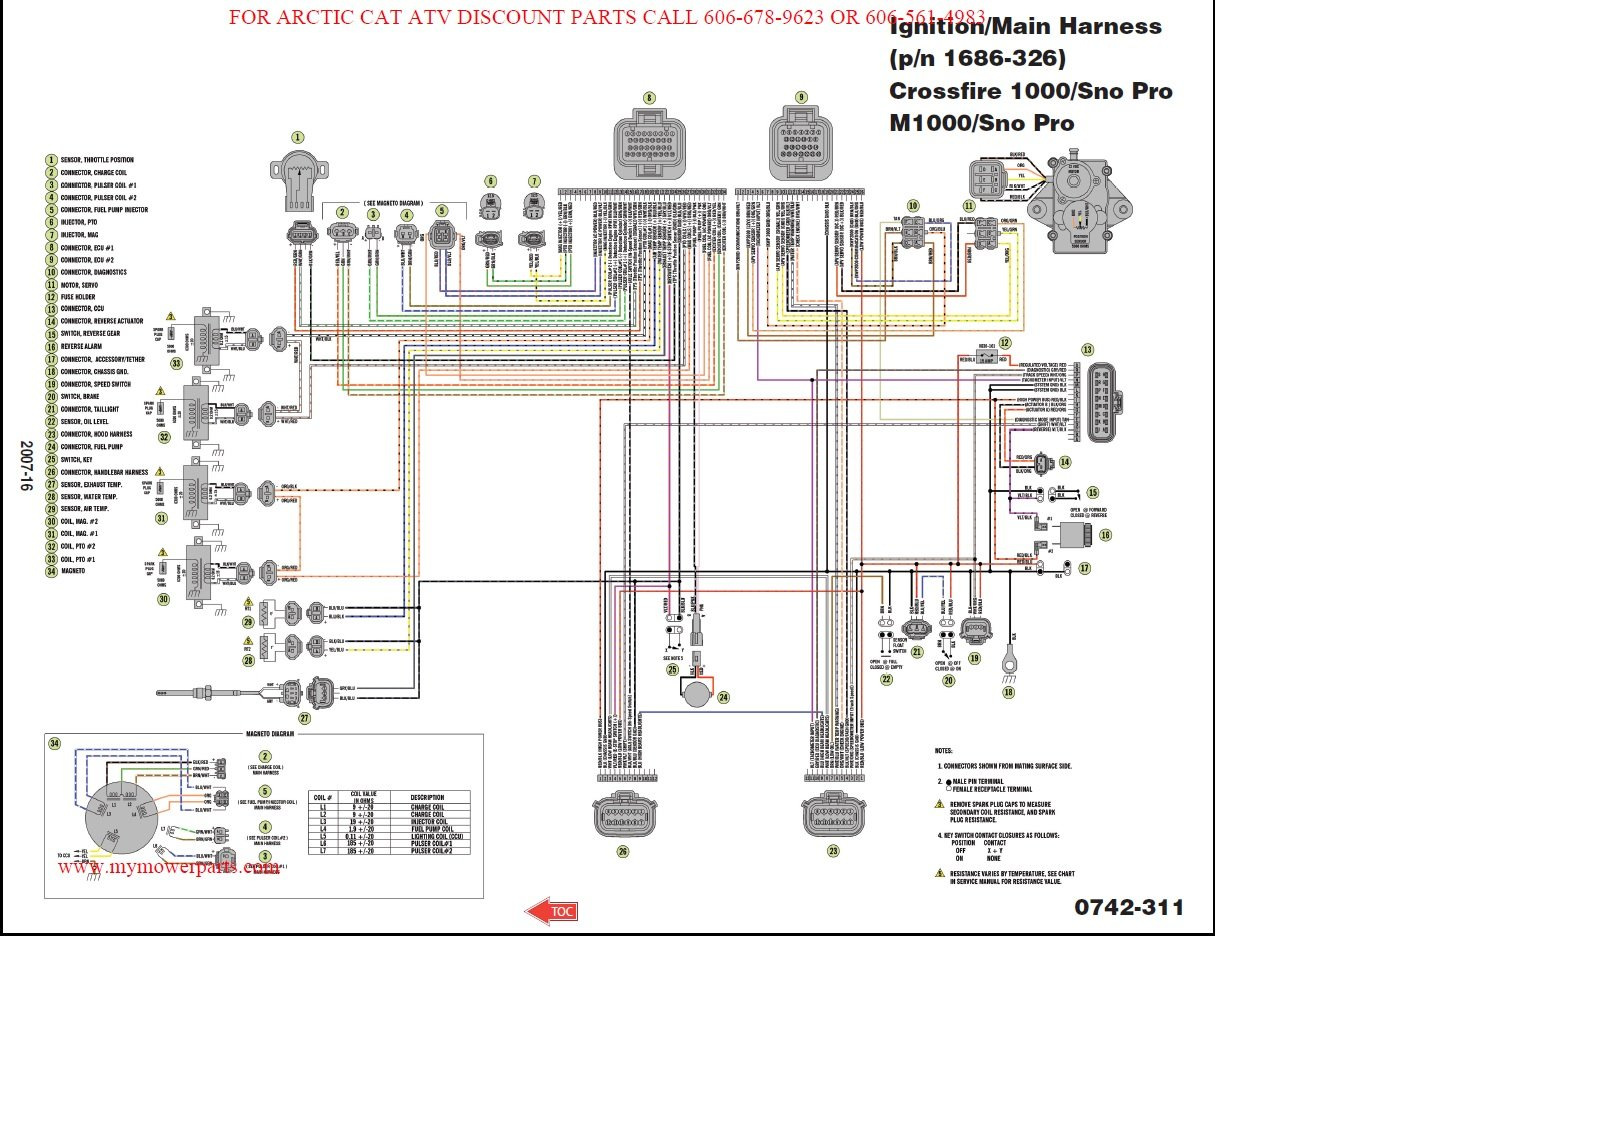 hight resolution of arctic cat wiring harness wiring diagrams scematic arctic cat 400 engine diagram arctic cat repair diagrams